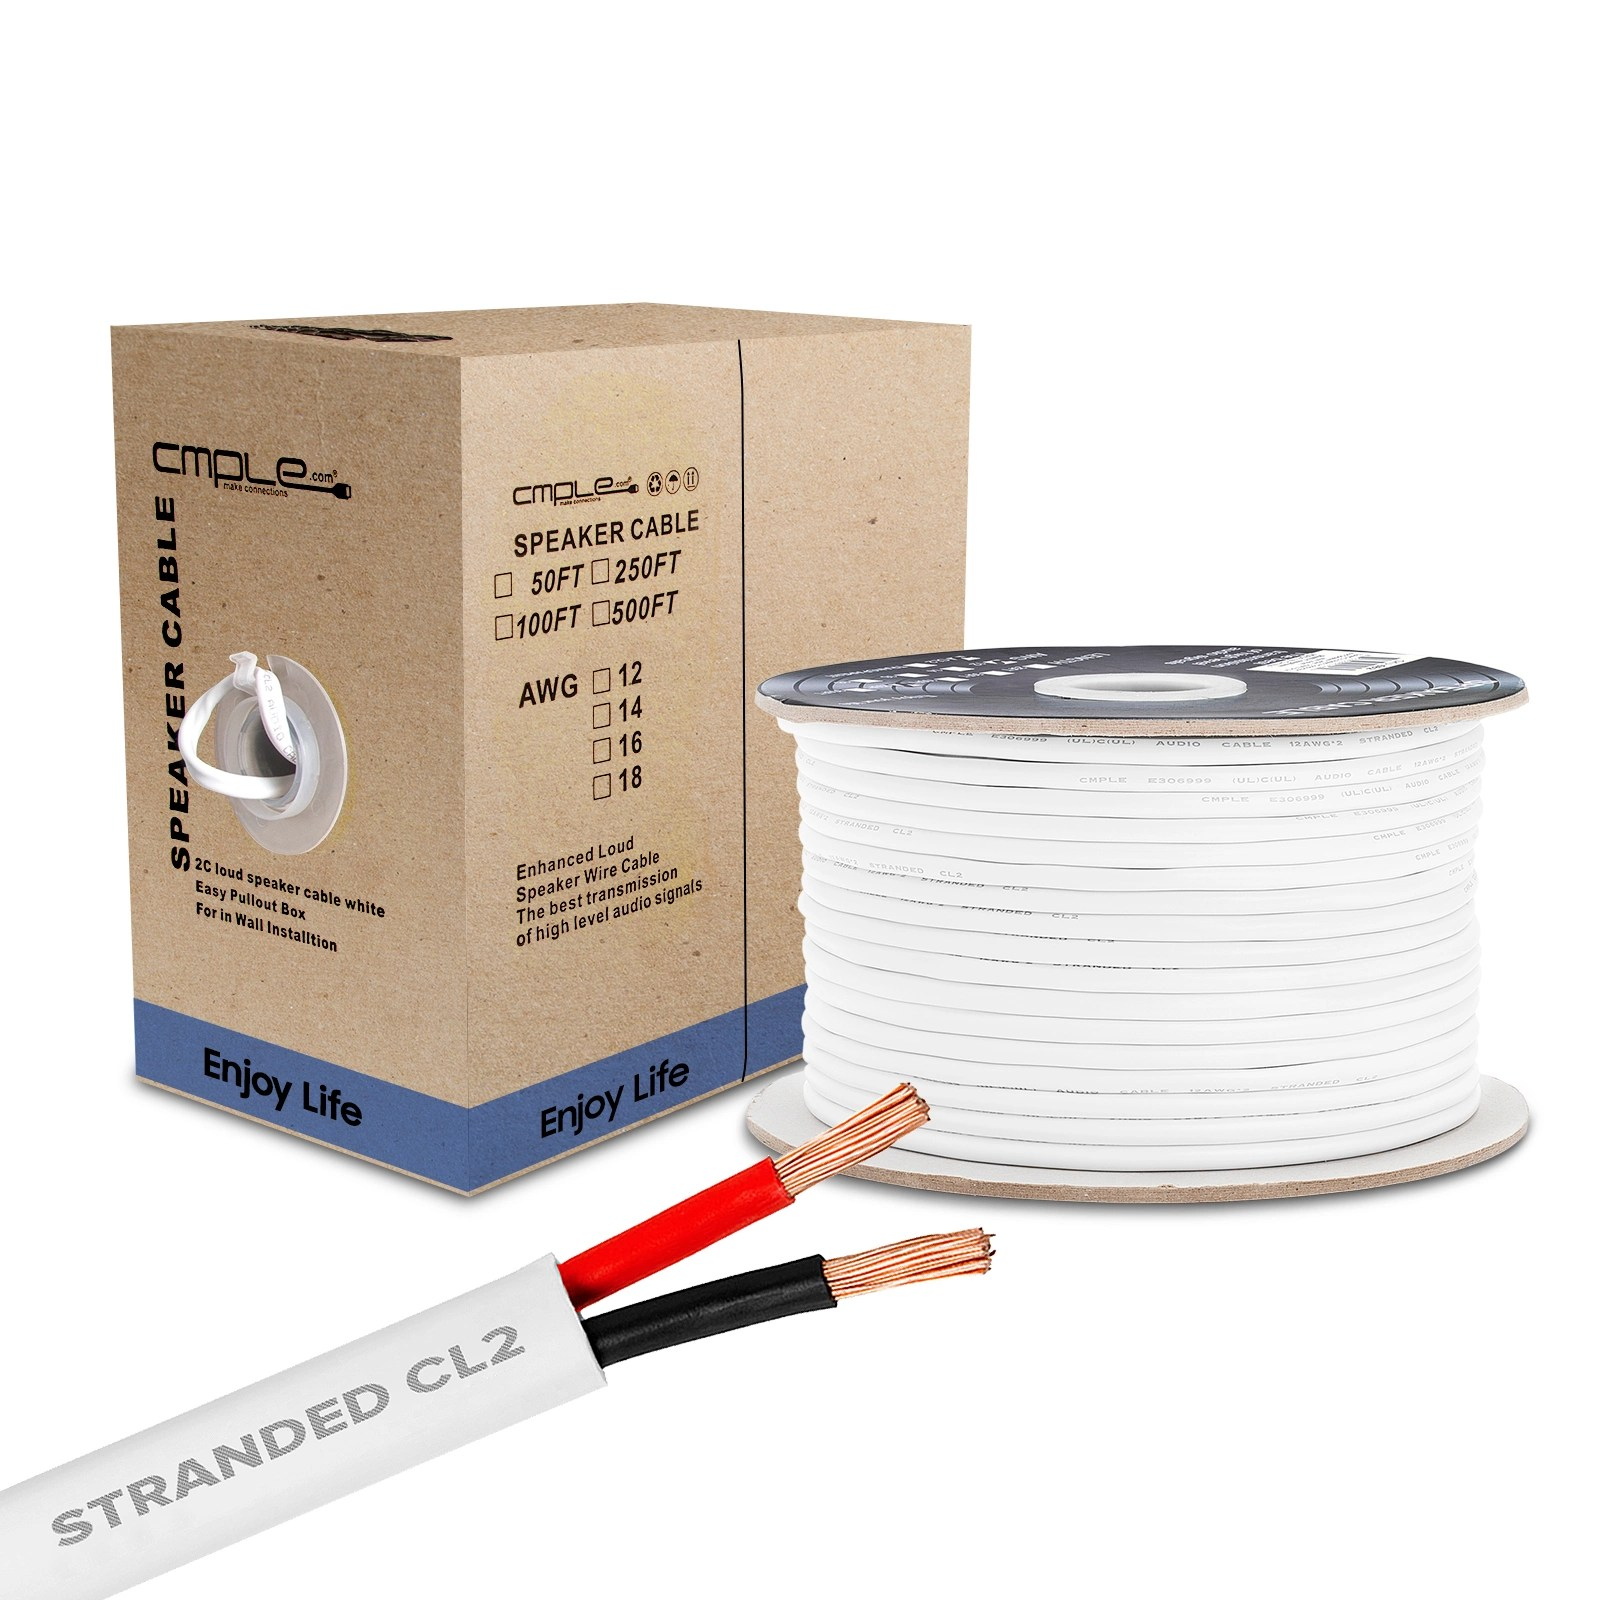 hight resolution of cmple 50ft 12awg speaker wire cable with 2 conductor speaker cable cca copper clad aluminum cl2 rated in wall speaker wire for home theater car audio